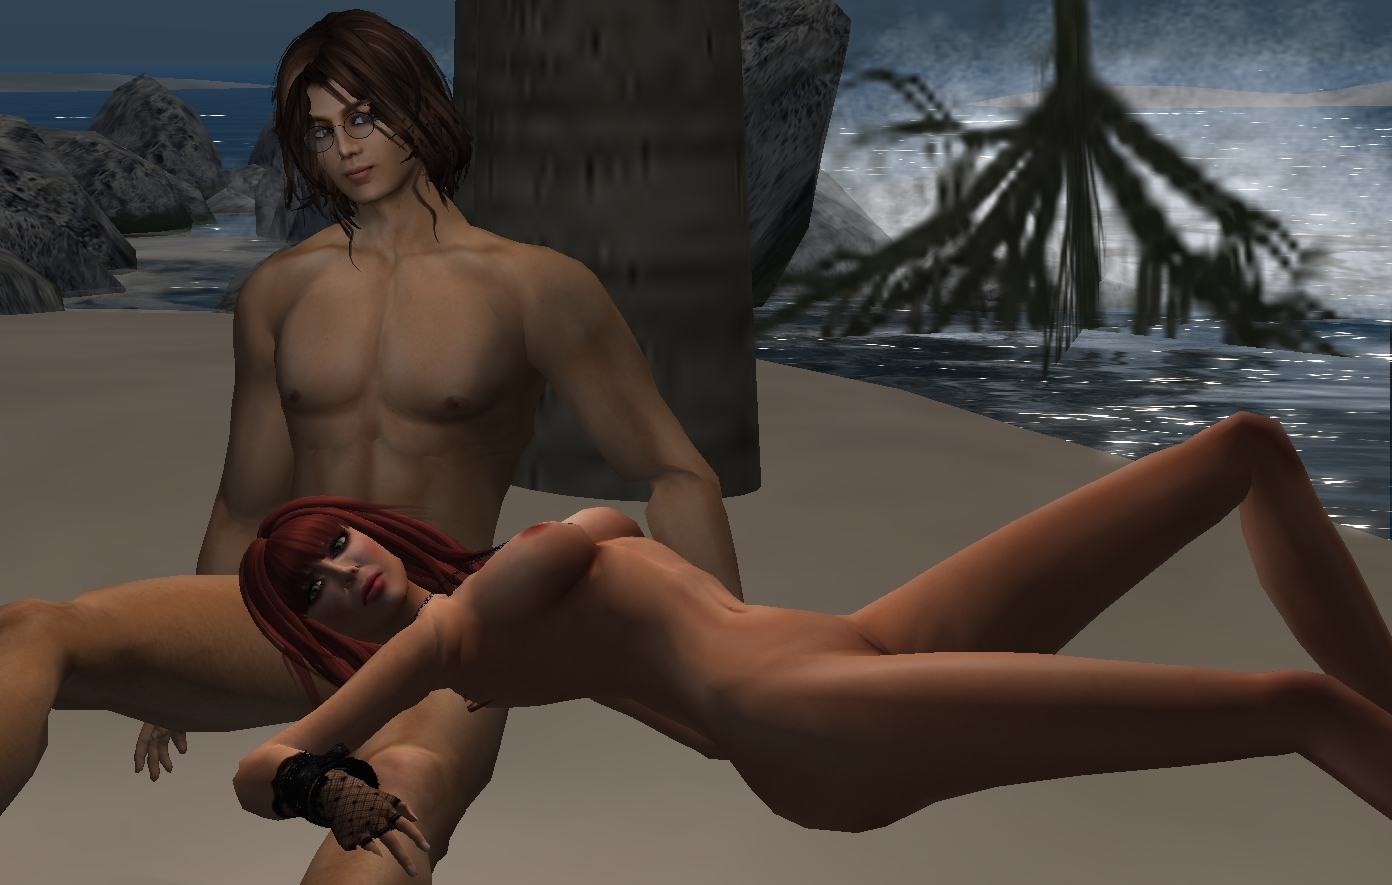 Resident evil 5 sexpics cartoon photos